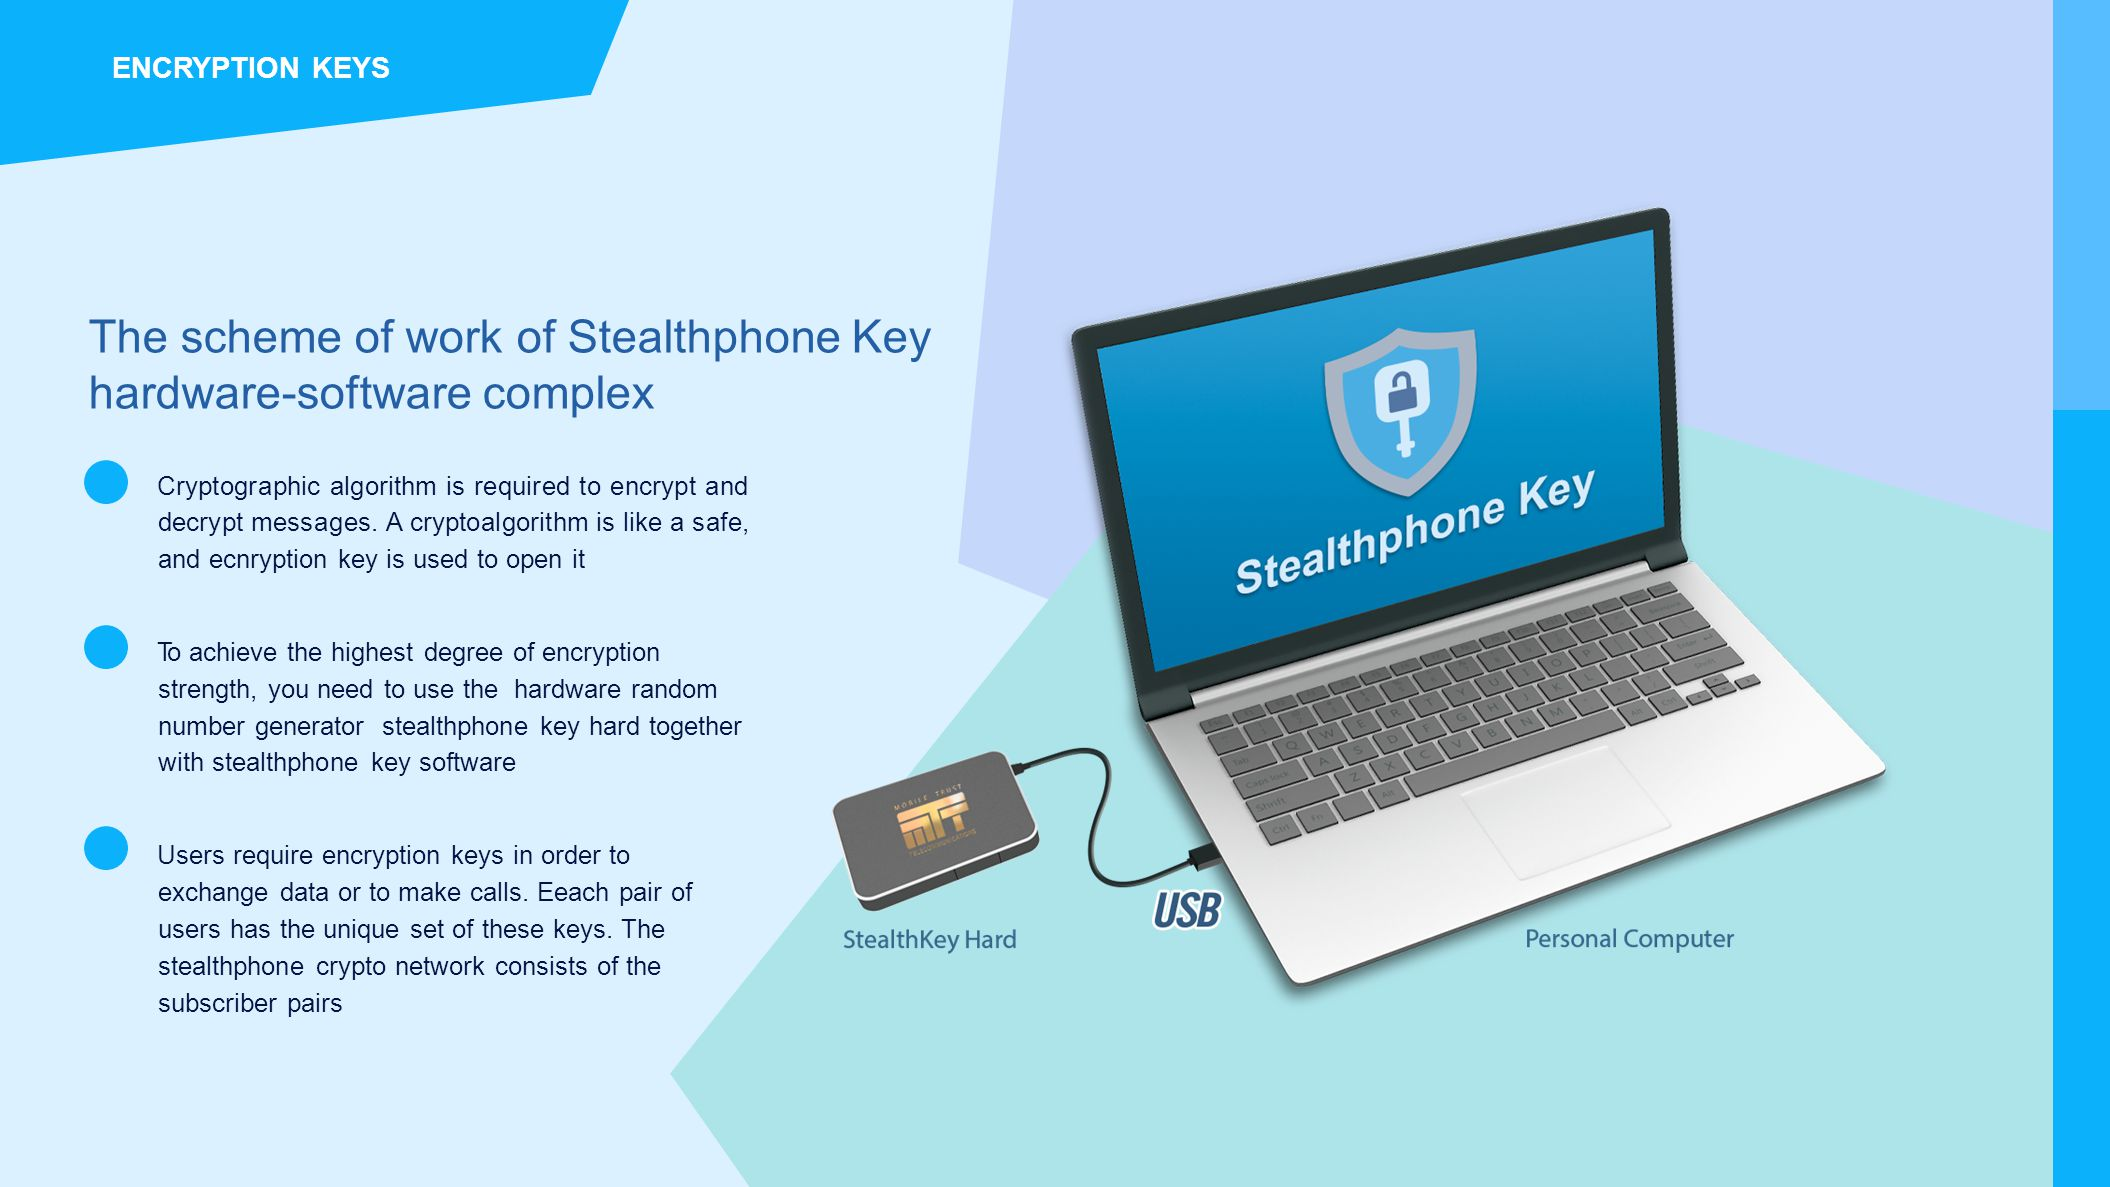 The scheme of work of Stealthphone Key hardware-software complex